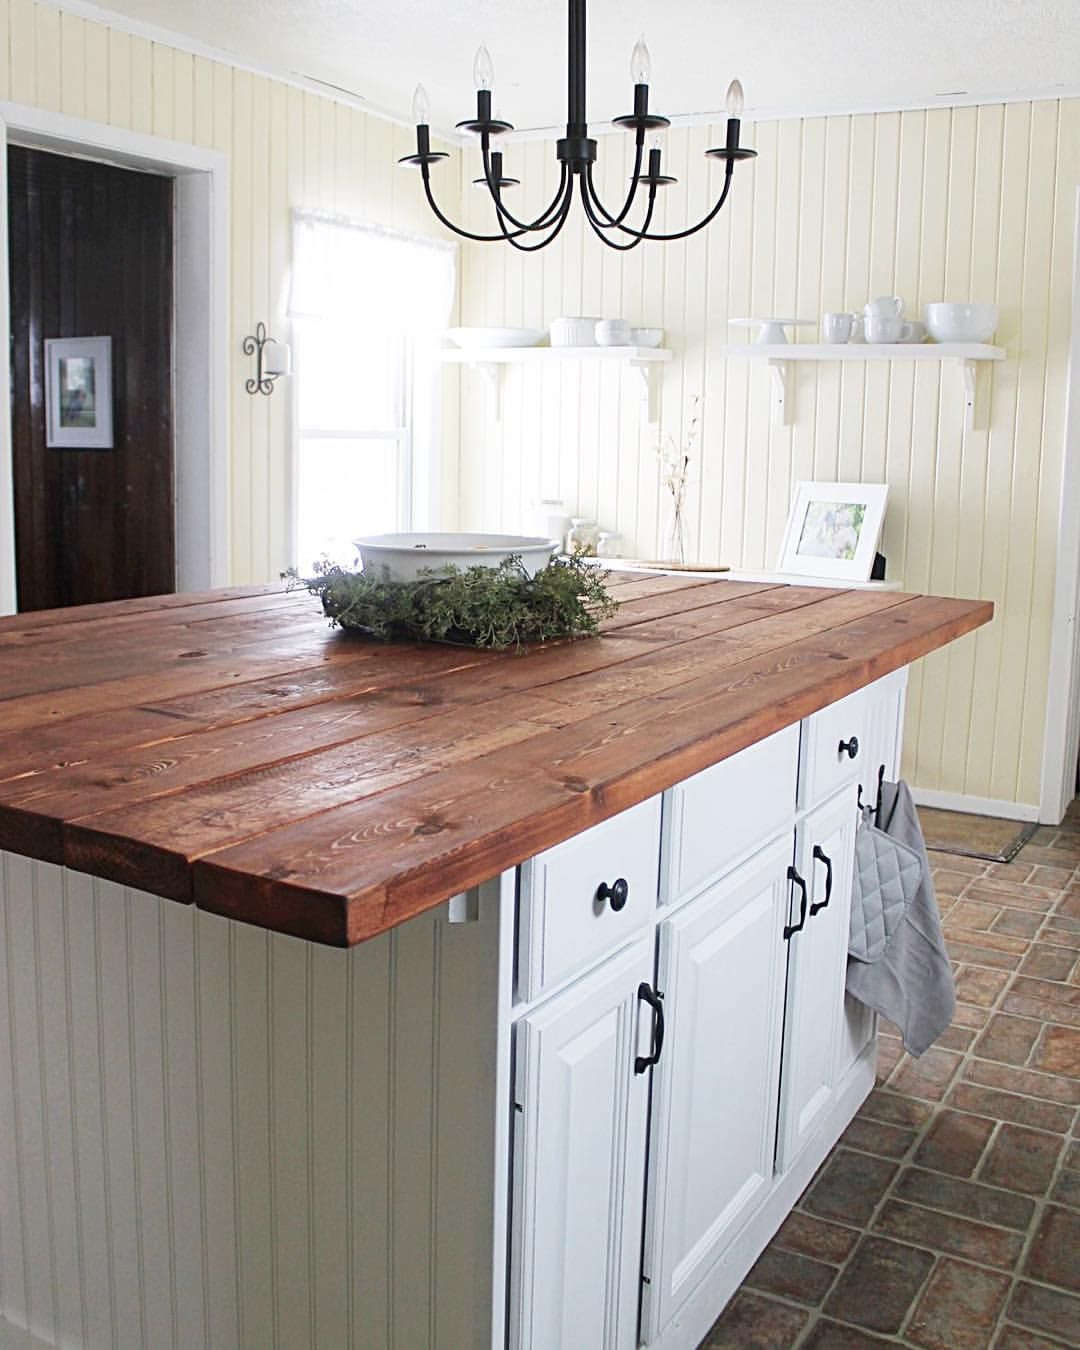 We Took 2 Mismatched Junk Cabinets And Fashioned Them Together One Was Shorter Than The Other So Kitchen Island Design Diy Kitchen Island Wood Kitchen Island